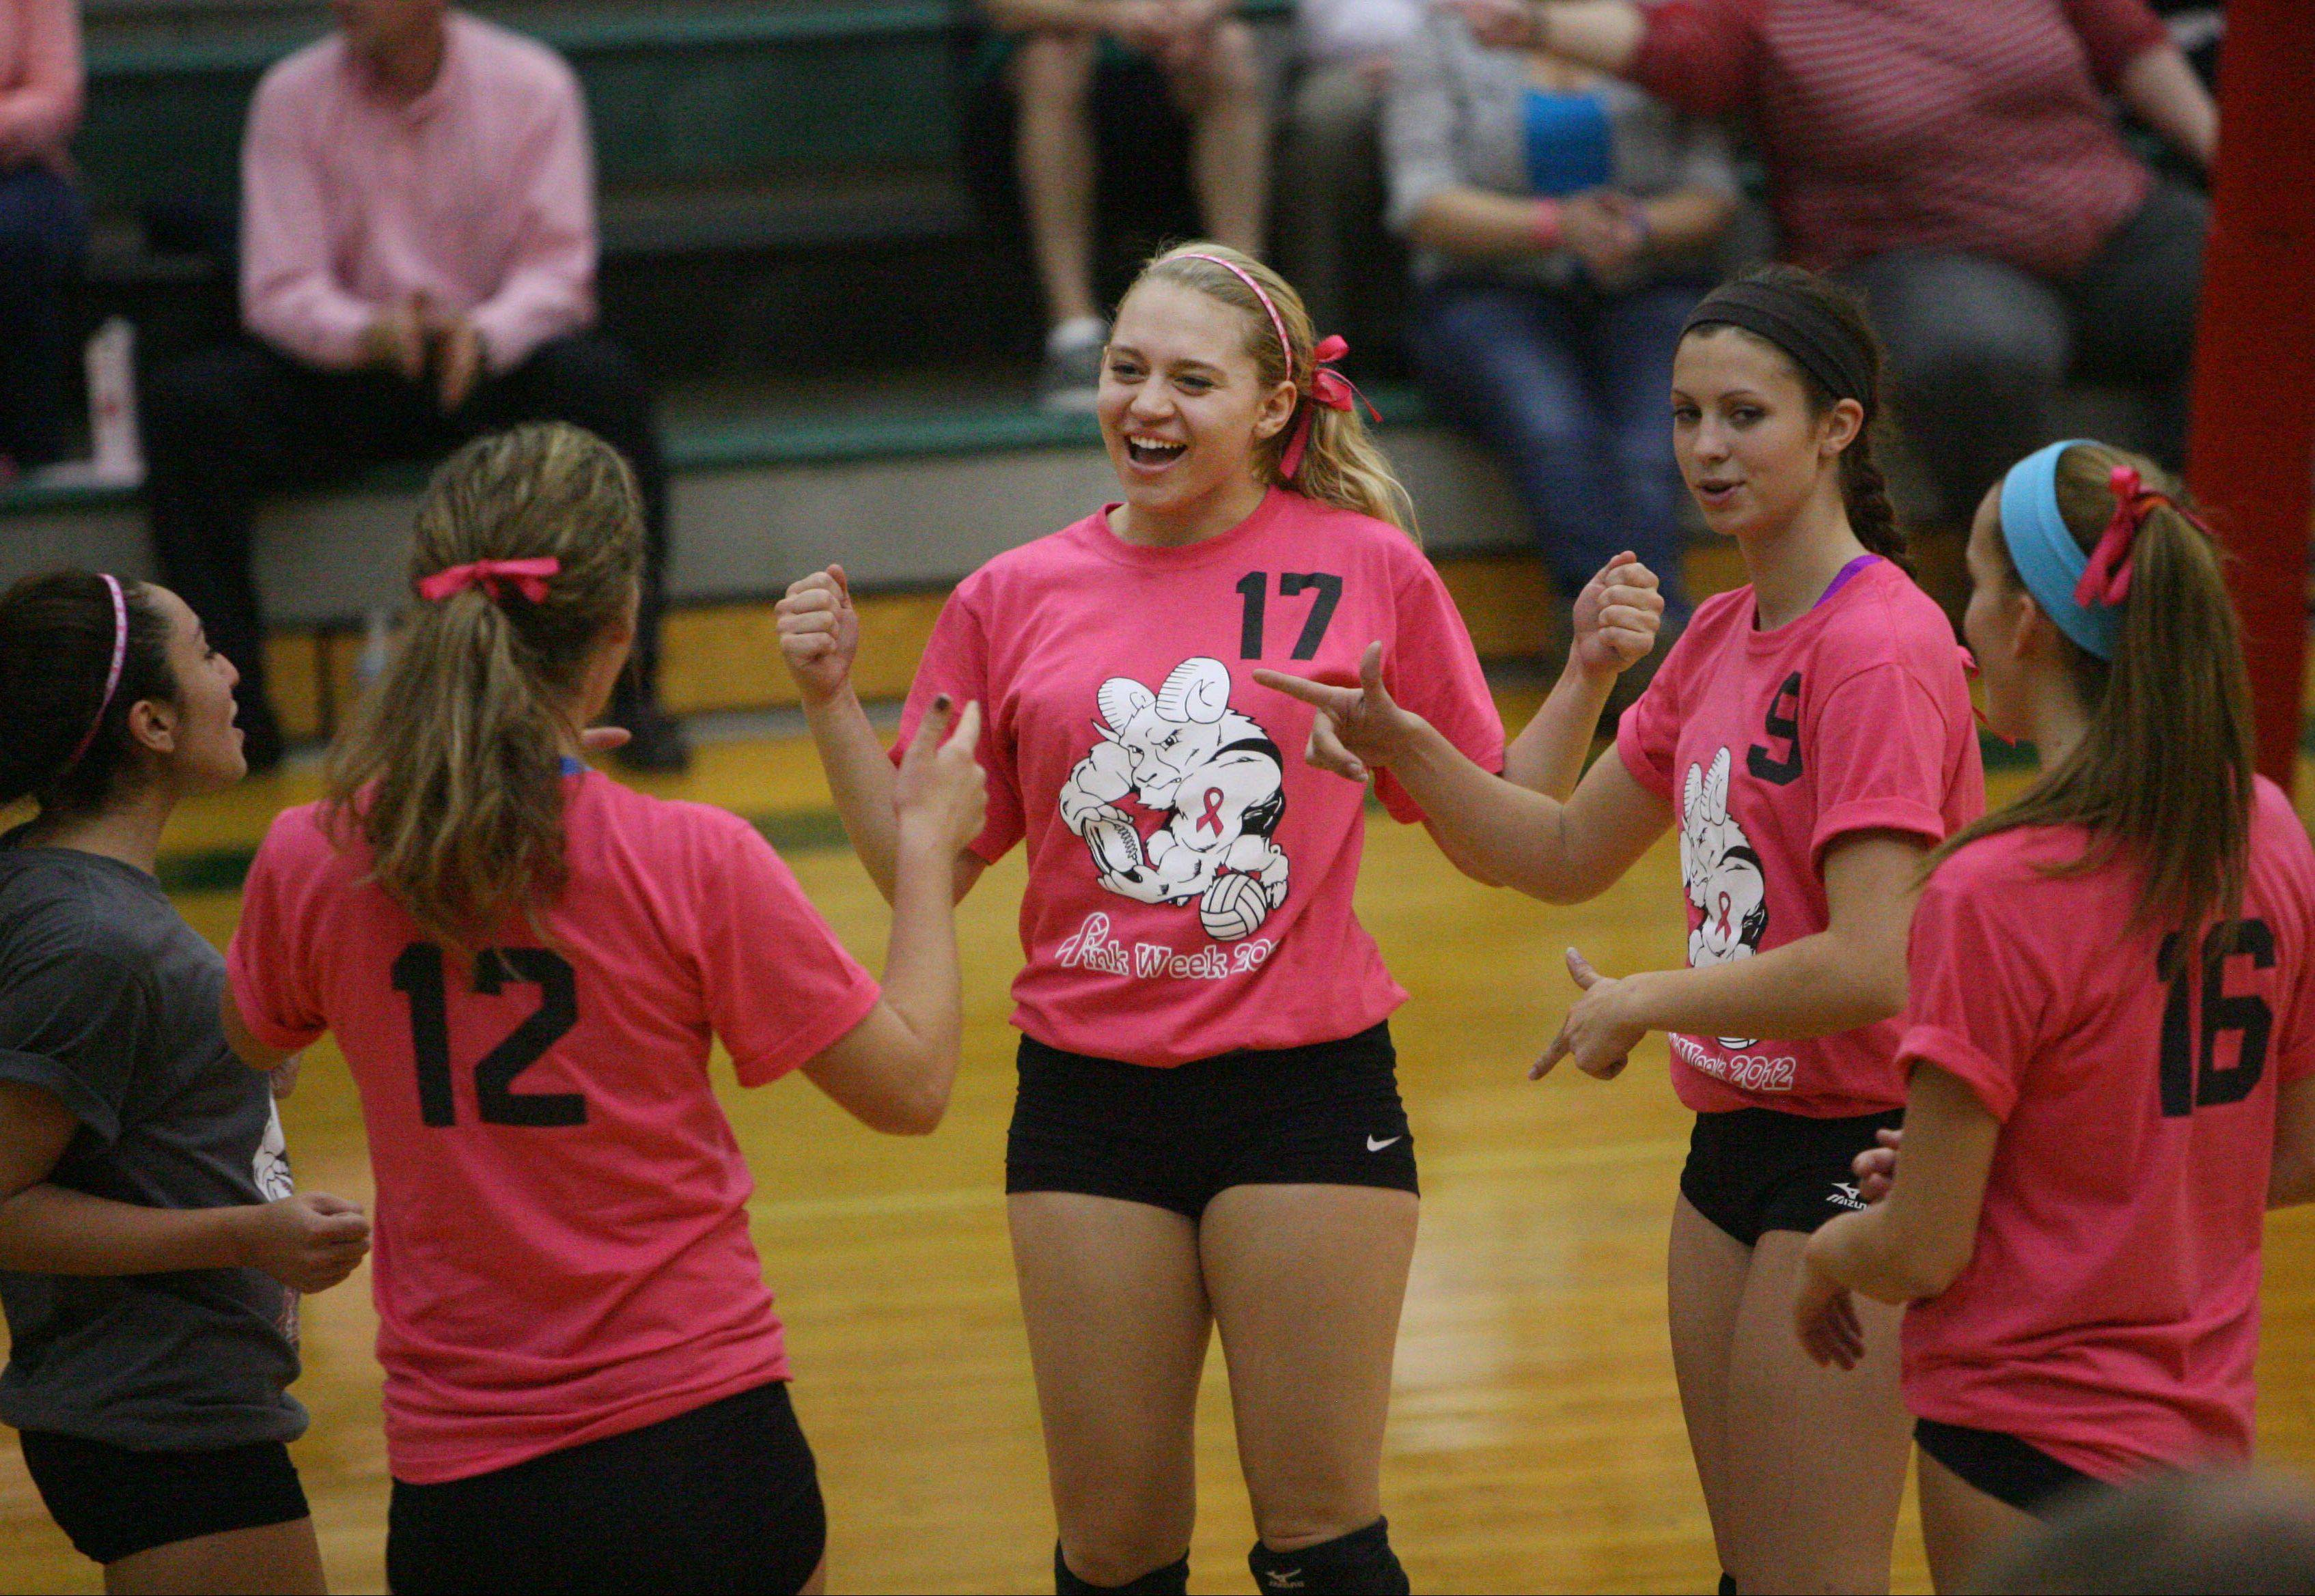 Grayslake Central's girls volleyball team dressed in pink for its contest against Woodstock to bring attention to National Breast Cancer Awareness Month on Tuesday at Grayslake Central.